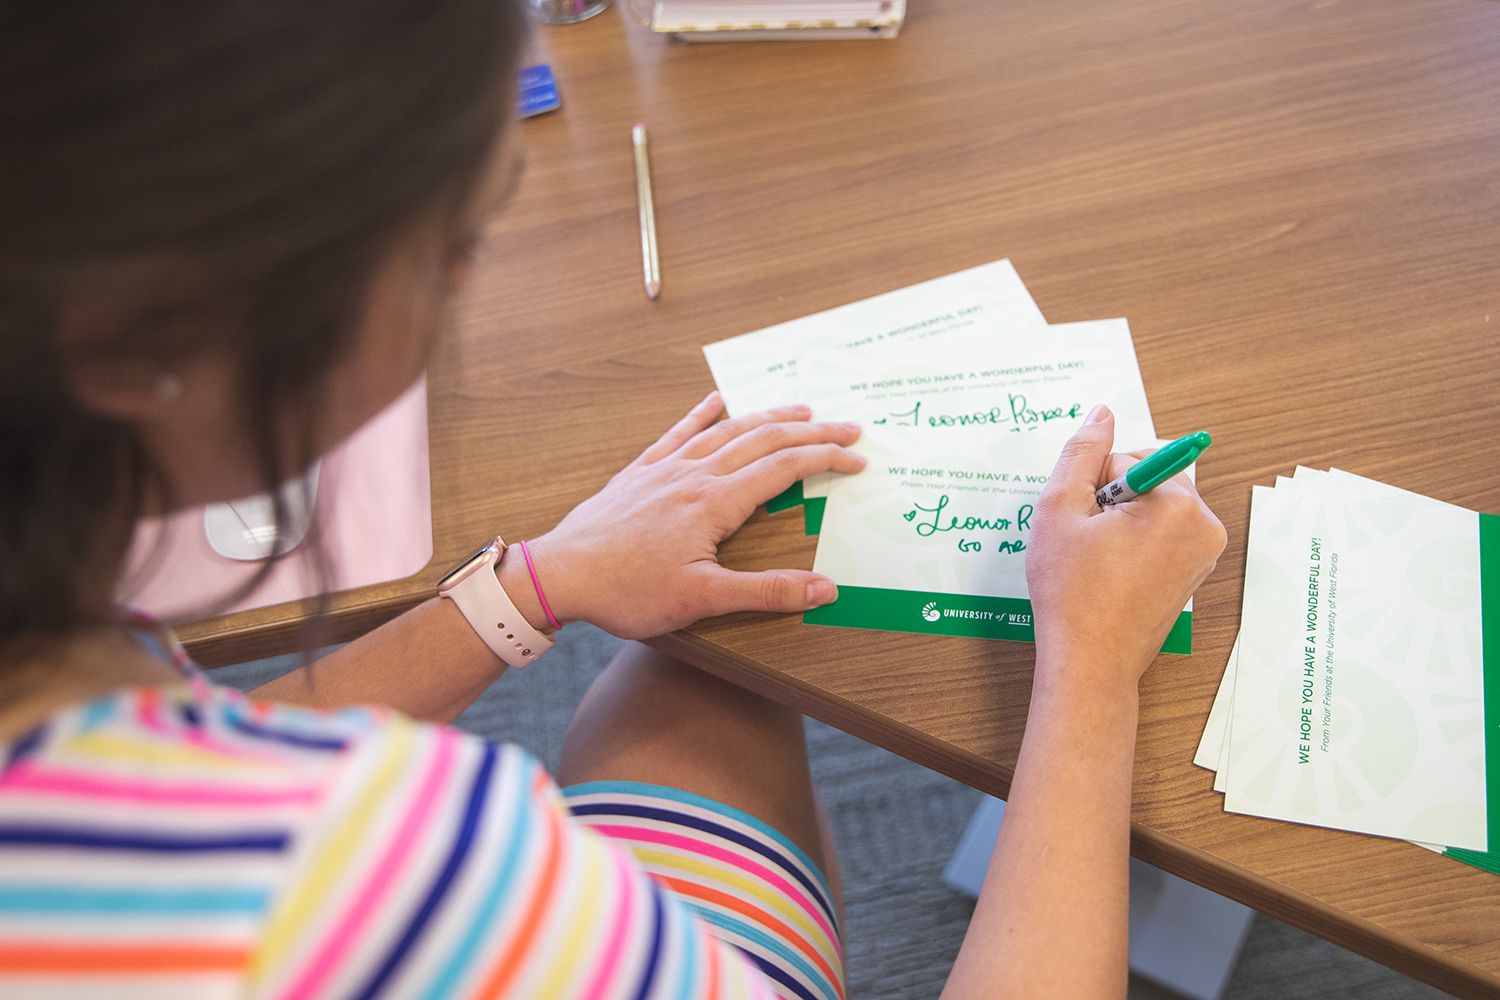 UWF faculty sign greeting cards for nursing home residents on March 27, 2020 in Crosby Hall, Building 10.